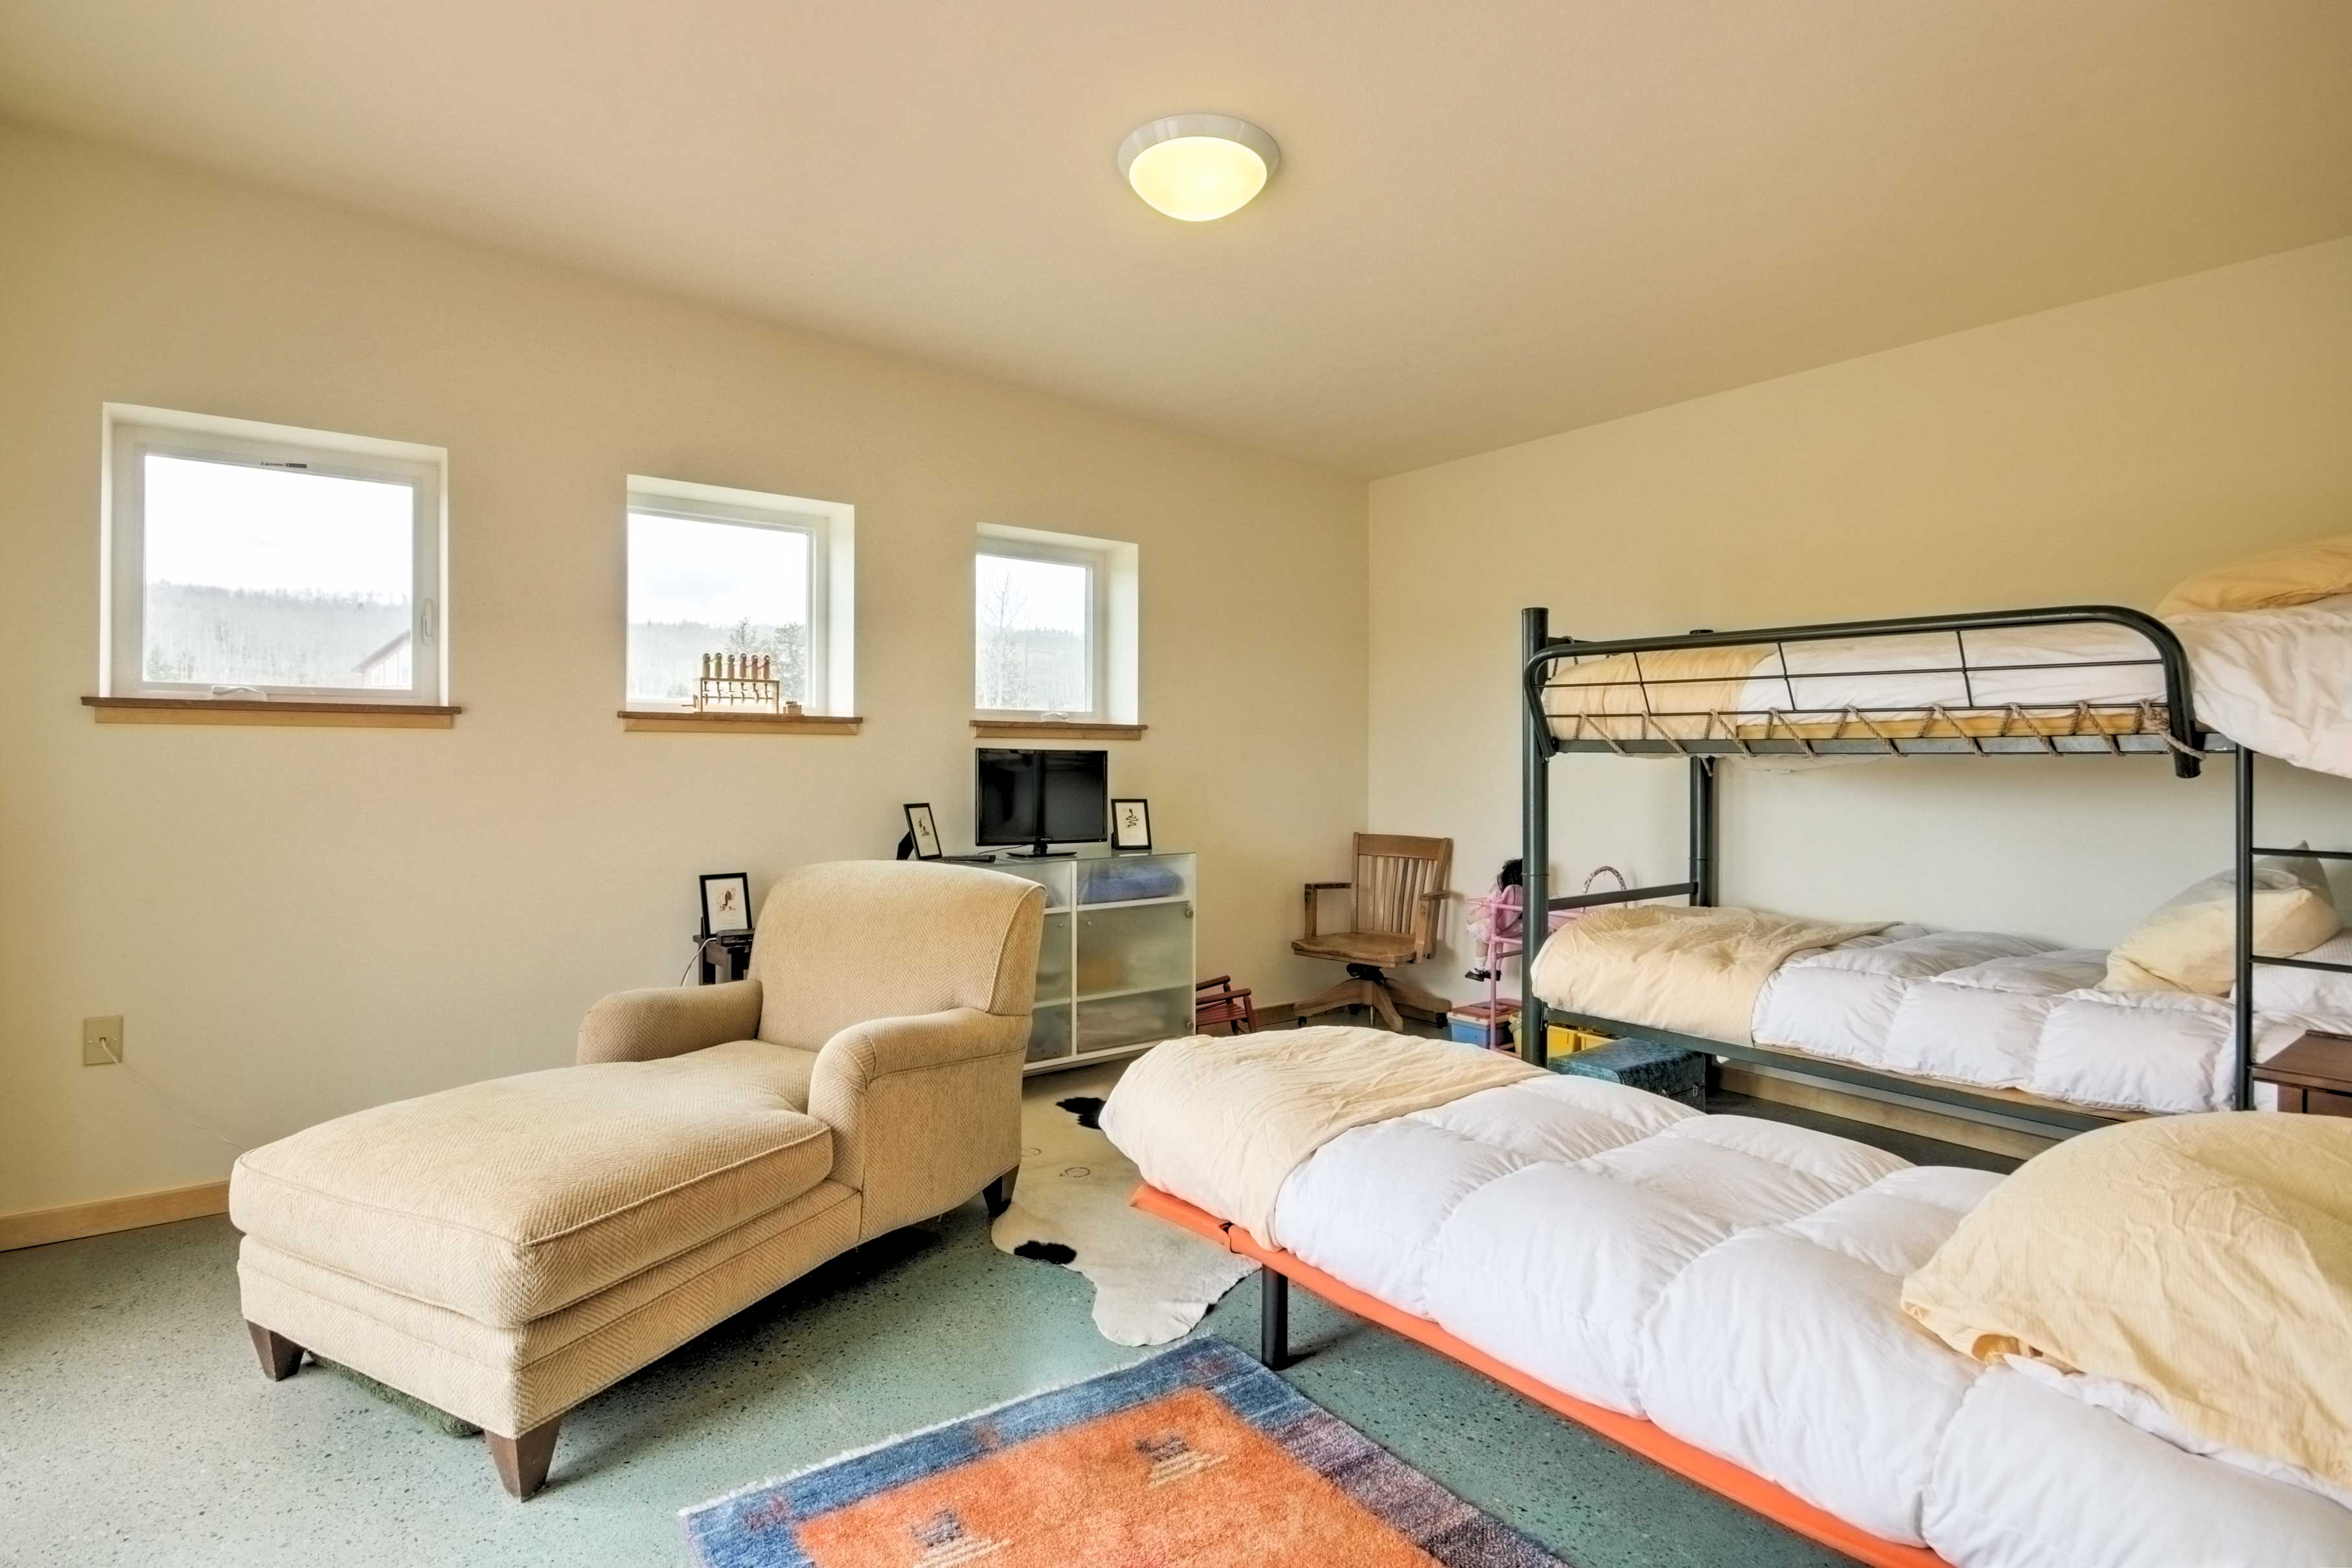 This room no longer features a bunk bed, but instead 2 separate twin beds.